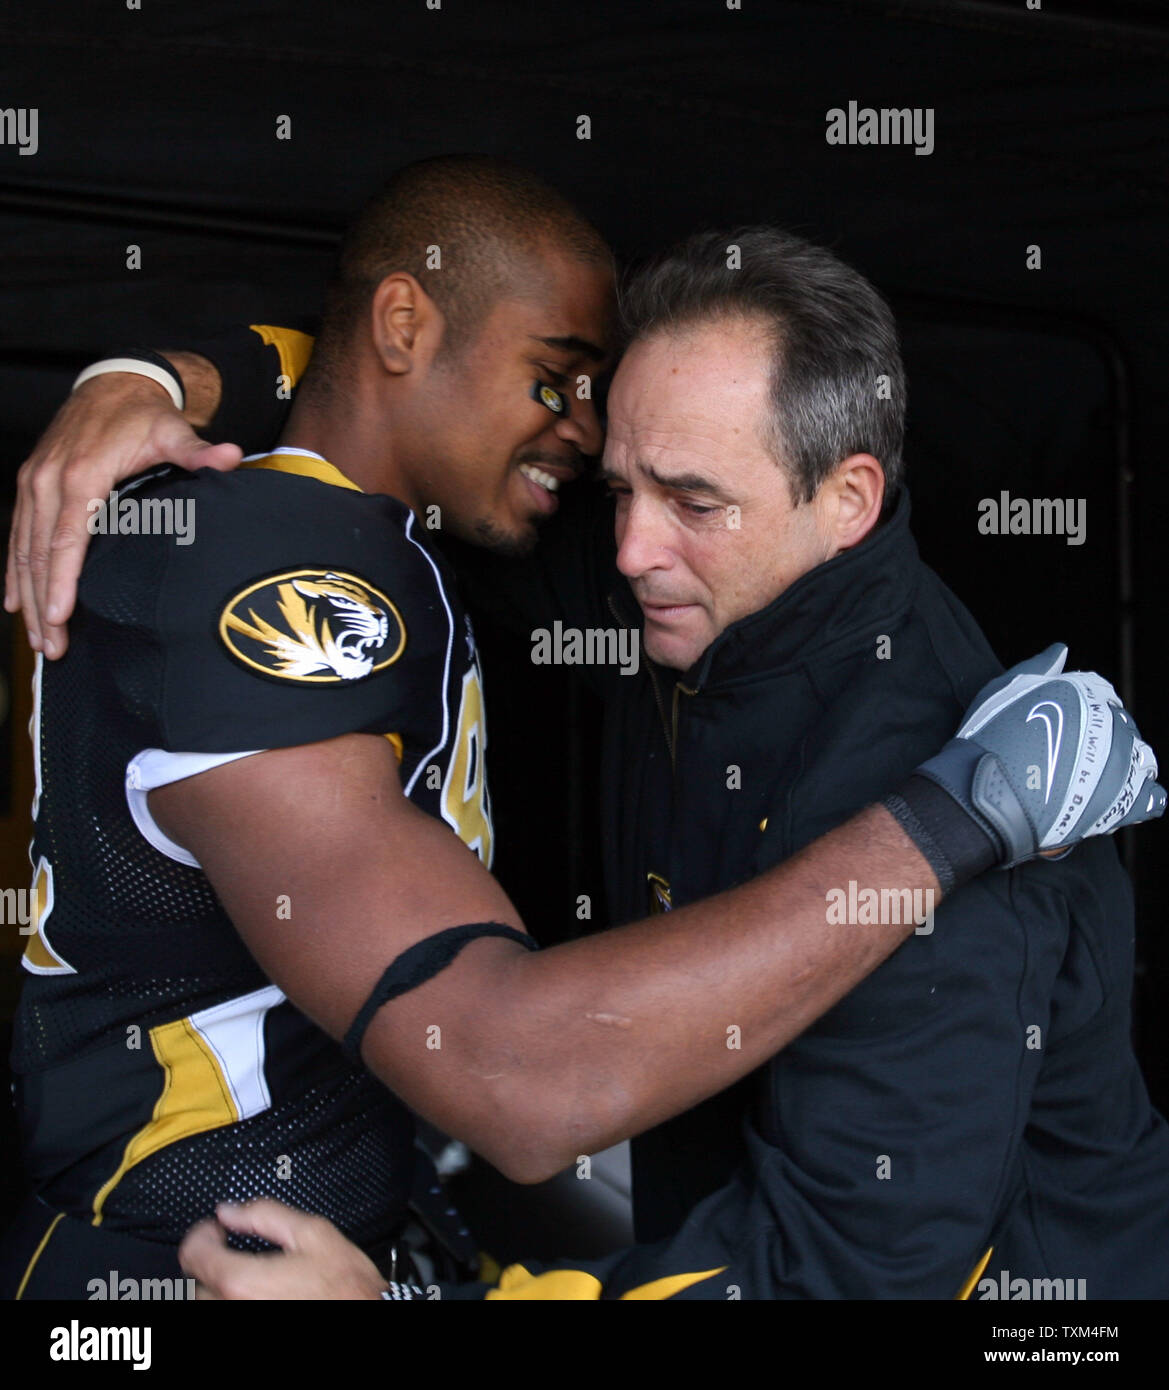 A tearful Missouri Tigers head football coach Gary Pinkel (R) embraces senior wide receiver Martin Rucker prior to the last 2007 home game, against the Texas A&M Aggies at Faurot Field in Columbia, Missouri on November 10, 2007.   (UPI Photo/Bill Greenblatt) - Stock Image